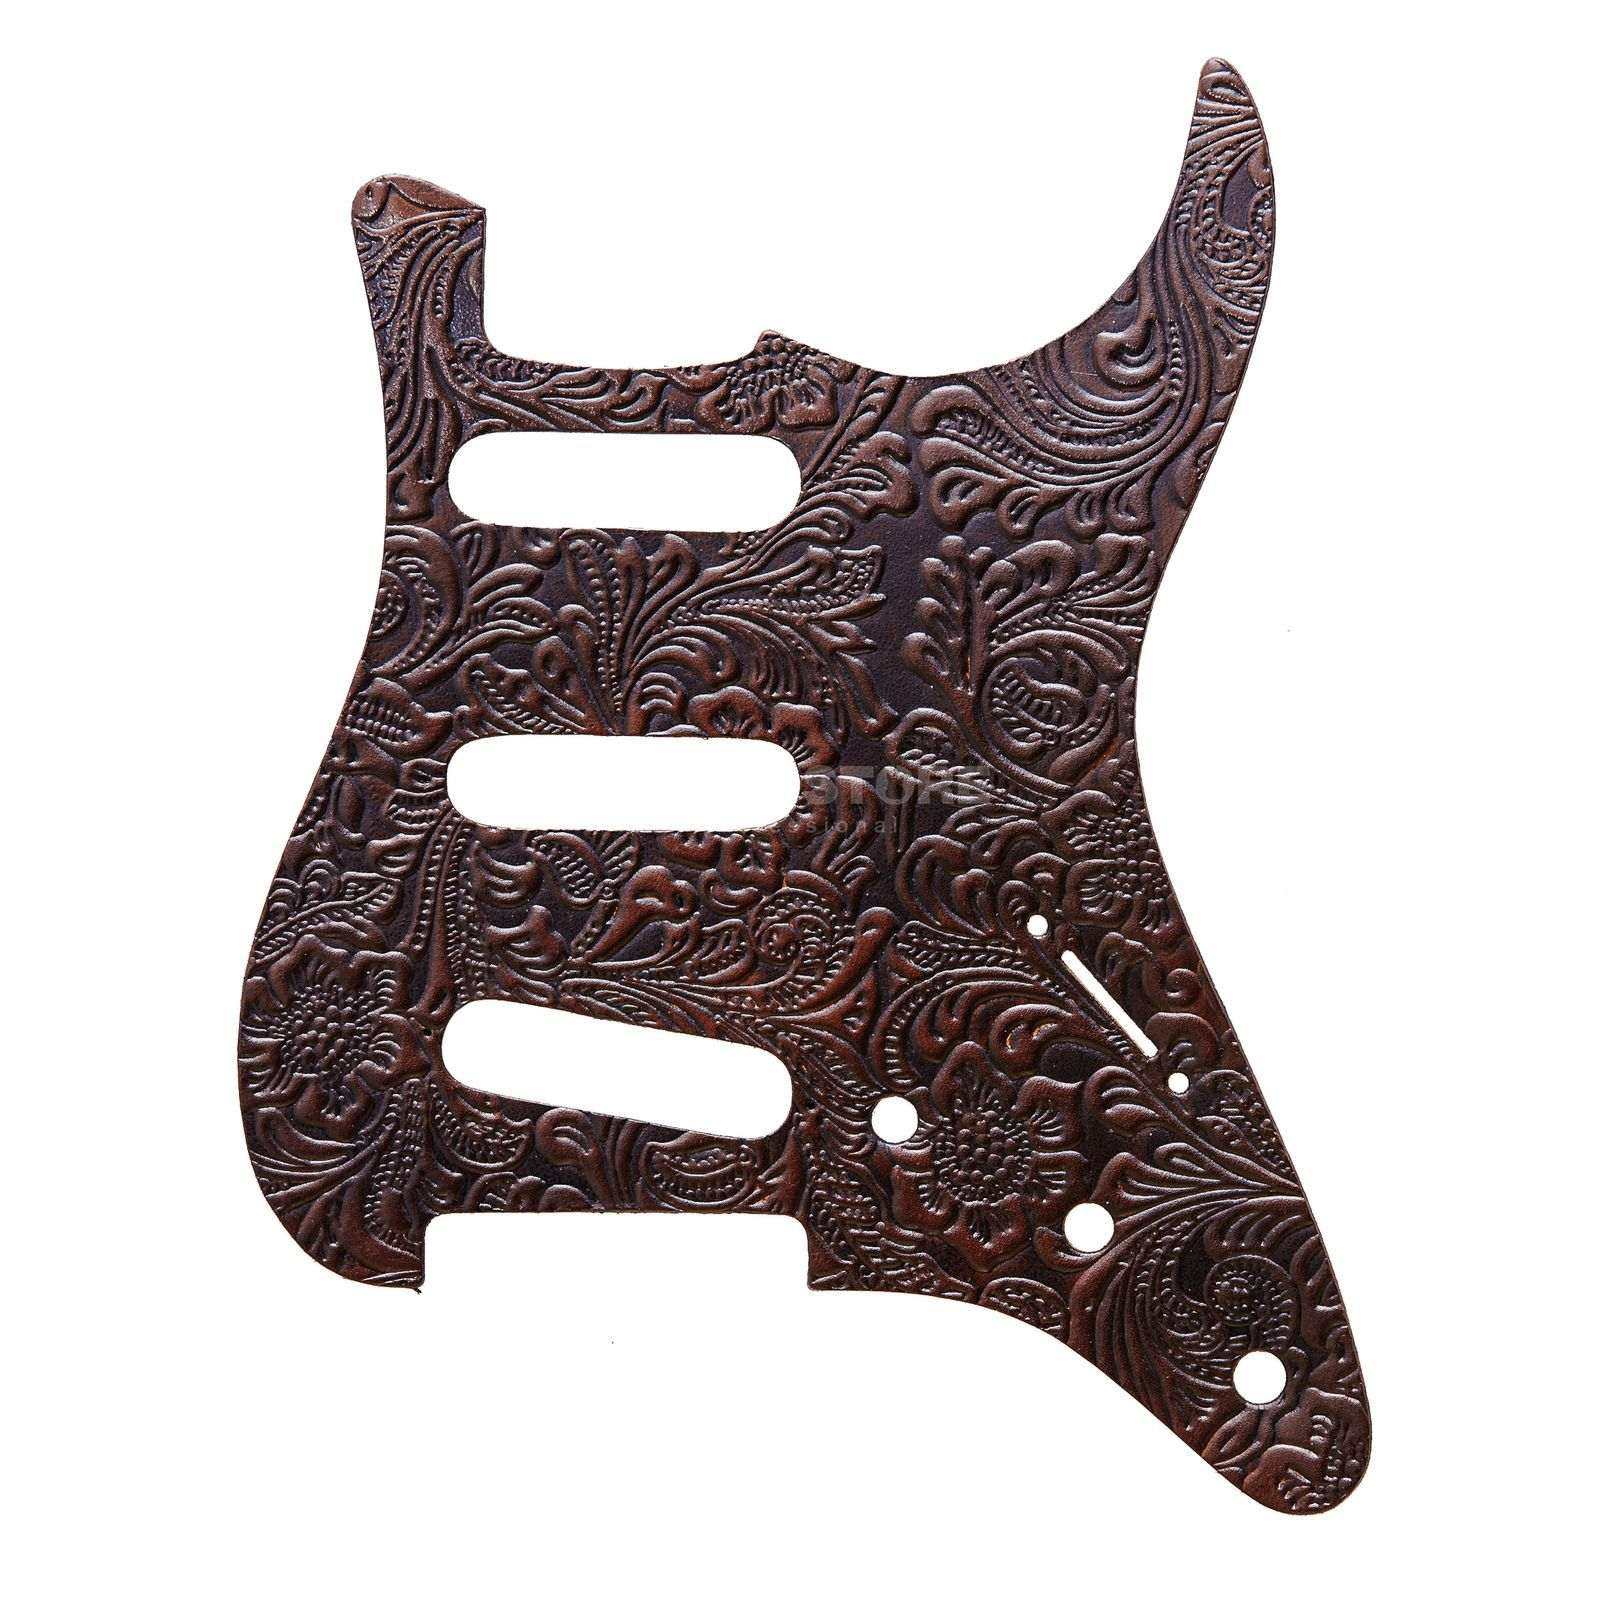 RightOn! Straps Pickguard S-Style Brown Leather Engraved Produktbillede